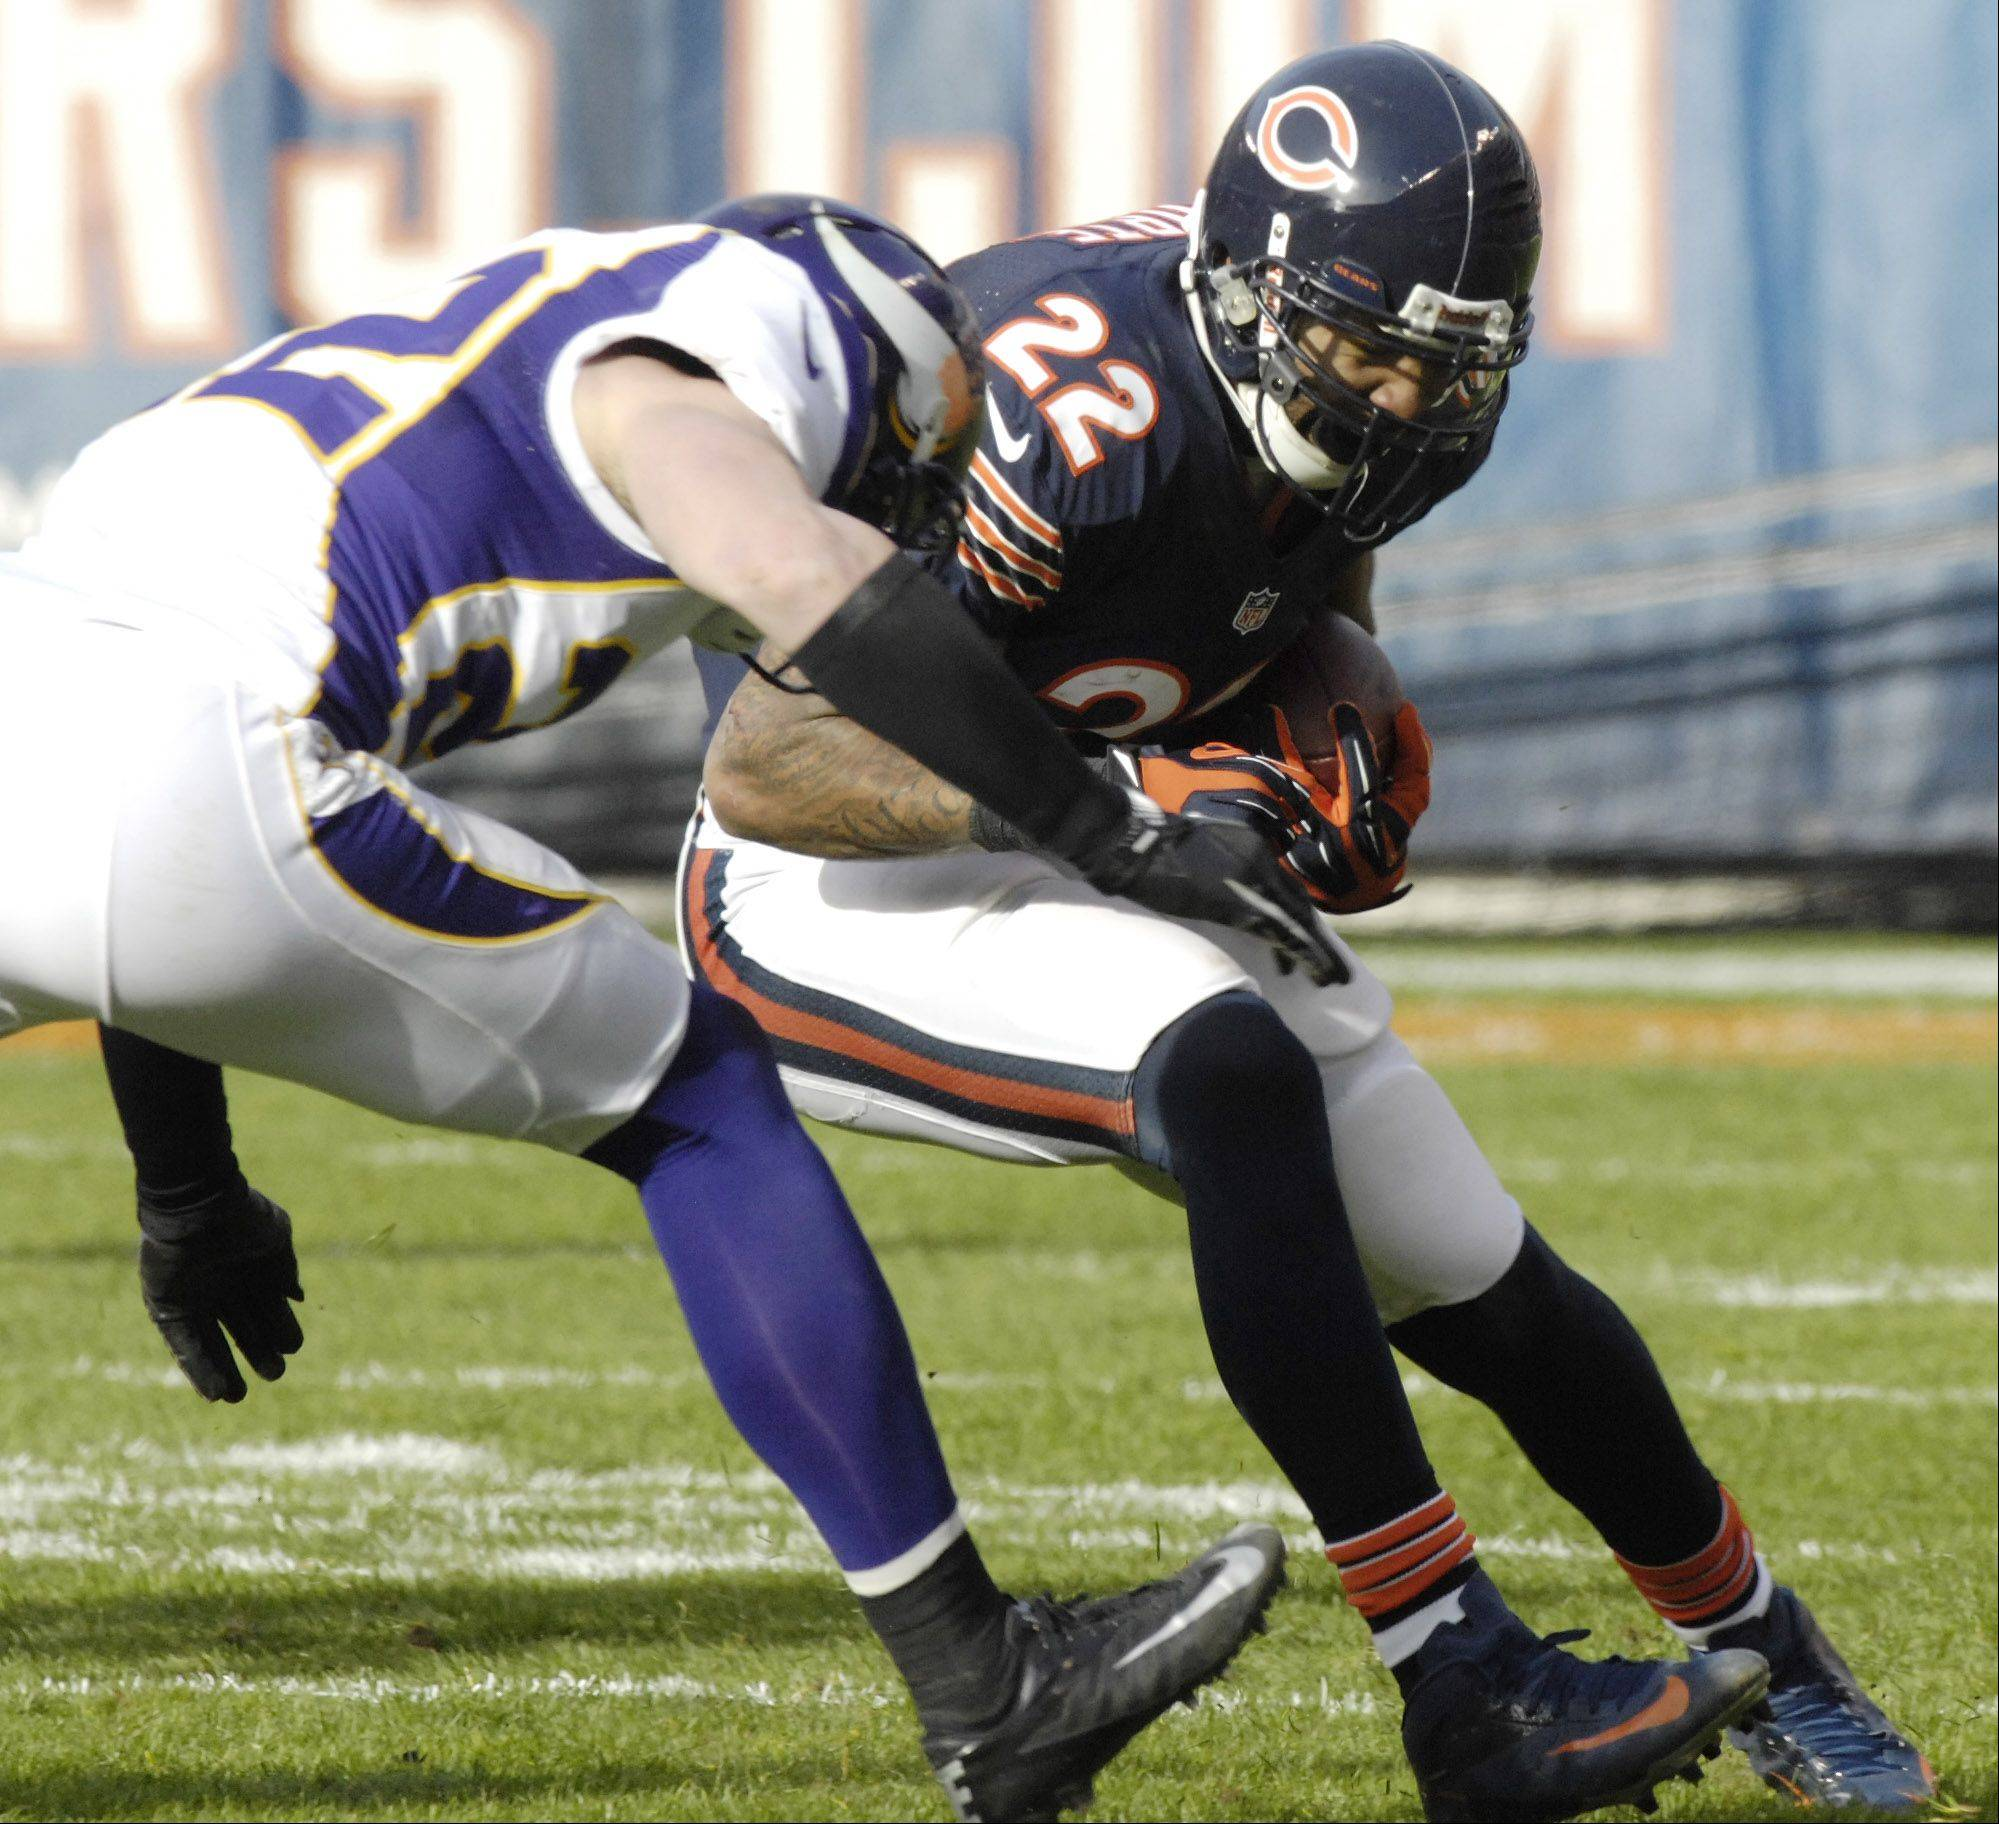 Chicago Bears running back Matt Forte gets tackled by Minnesota Vikings free safety Harrison Smith during the second quarter at Soldier Field Sunday.